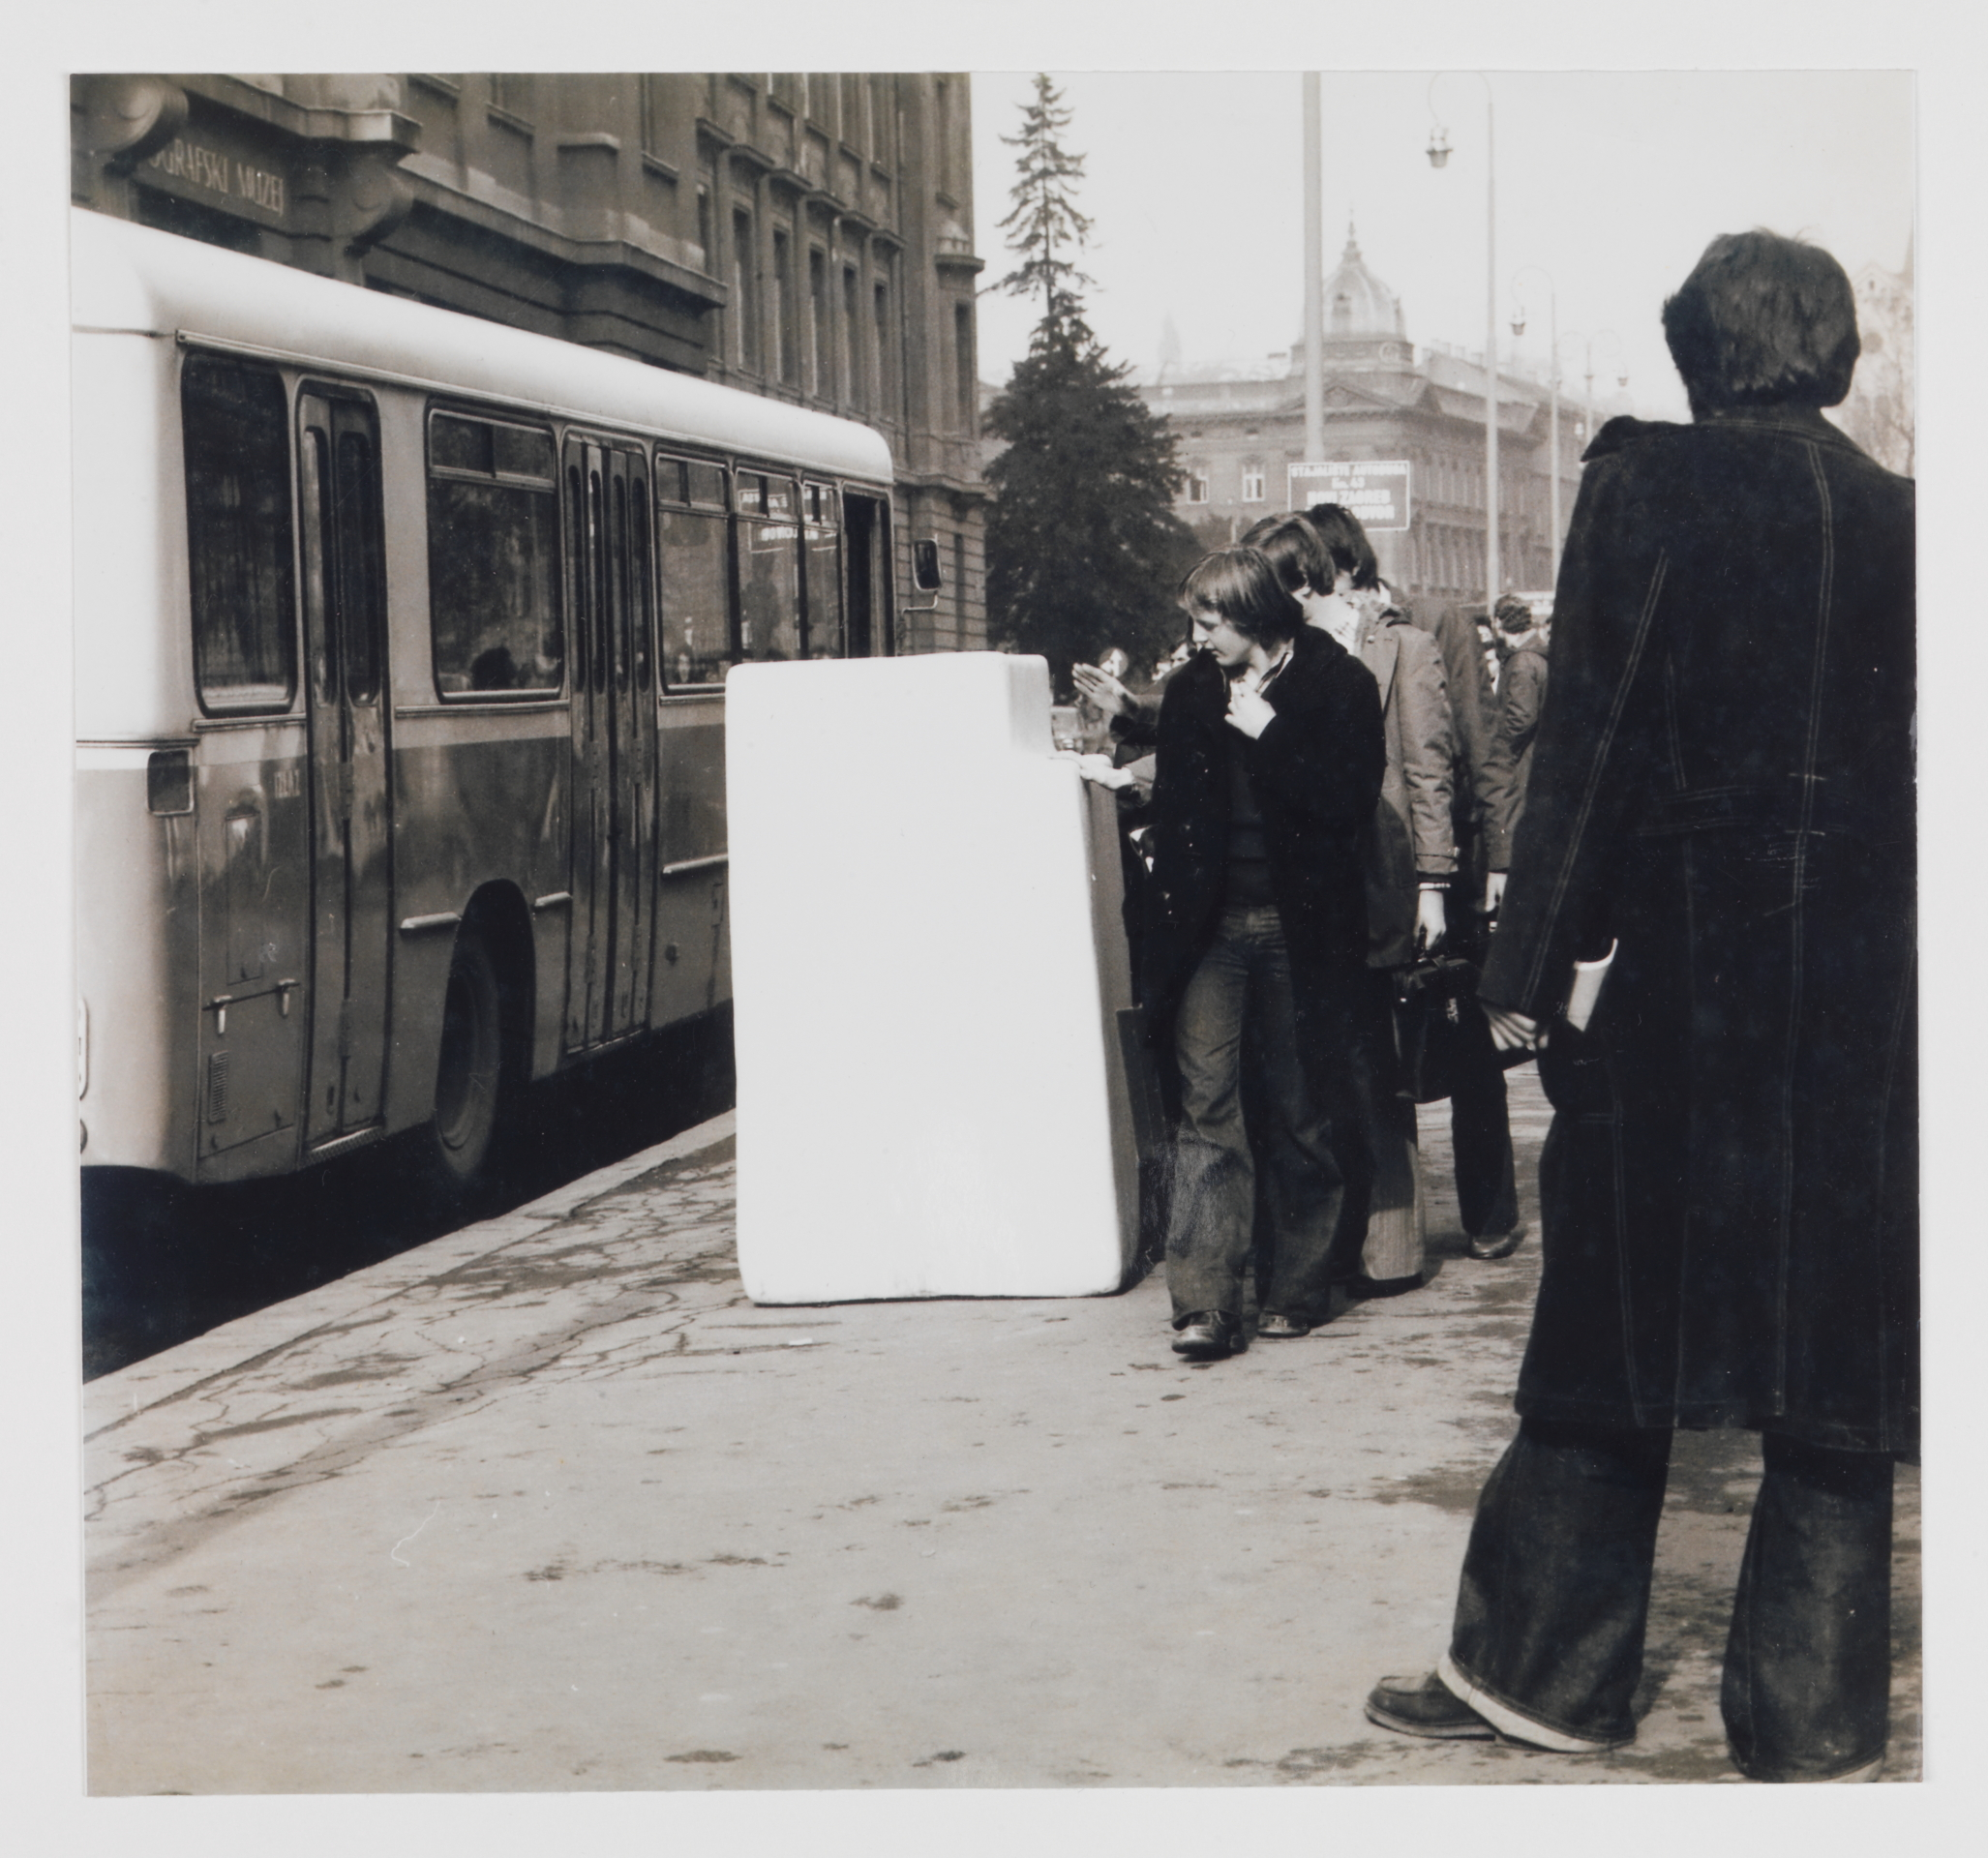 Shape of Space (Refrigerator), b/w photograph, 18.5 x 17 cm, 1975